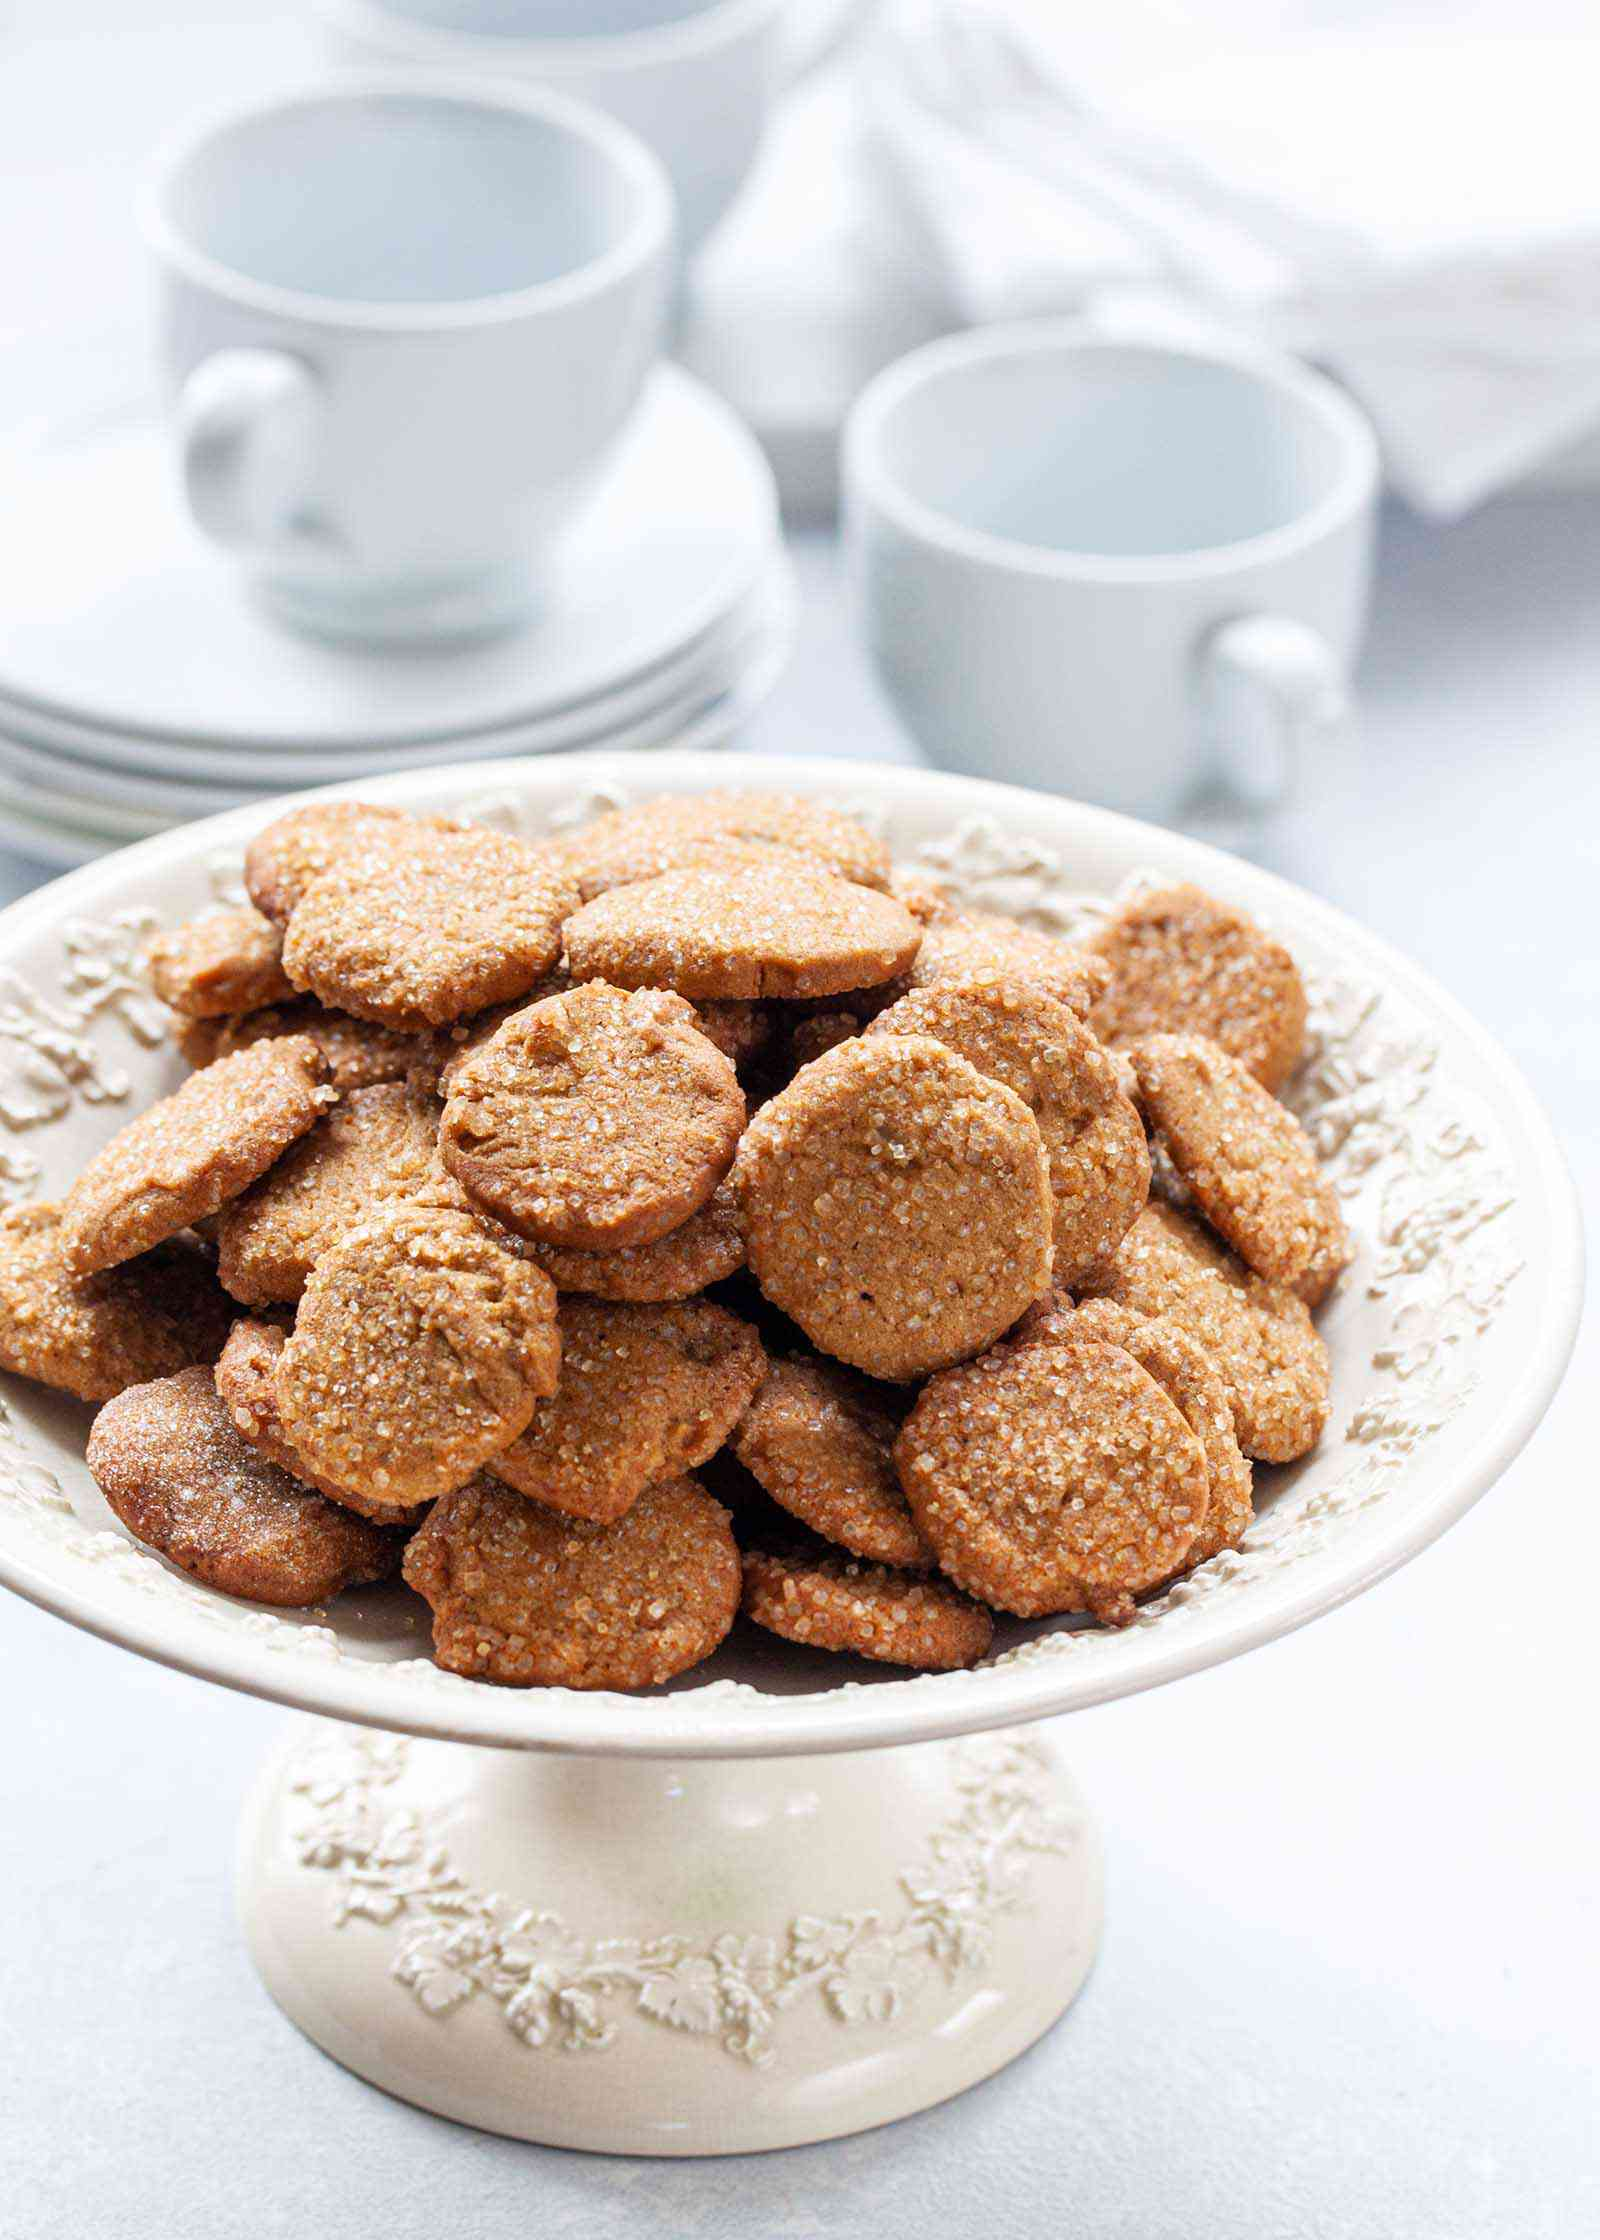 Make Ahead Slice and Bake Ginger Cookies heaped on a cake stand with coffee mugs and dessert plates set behind.